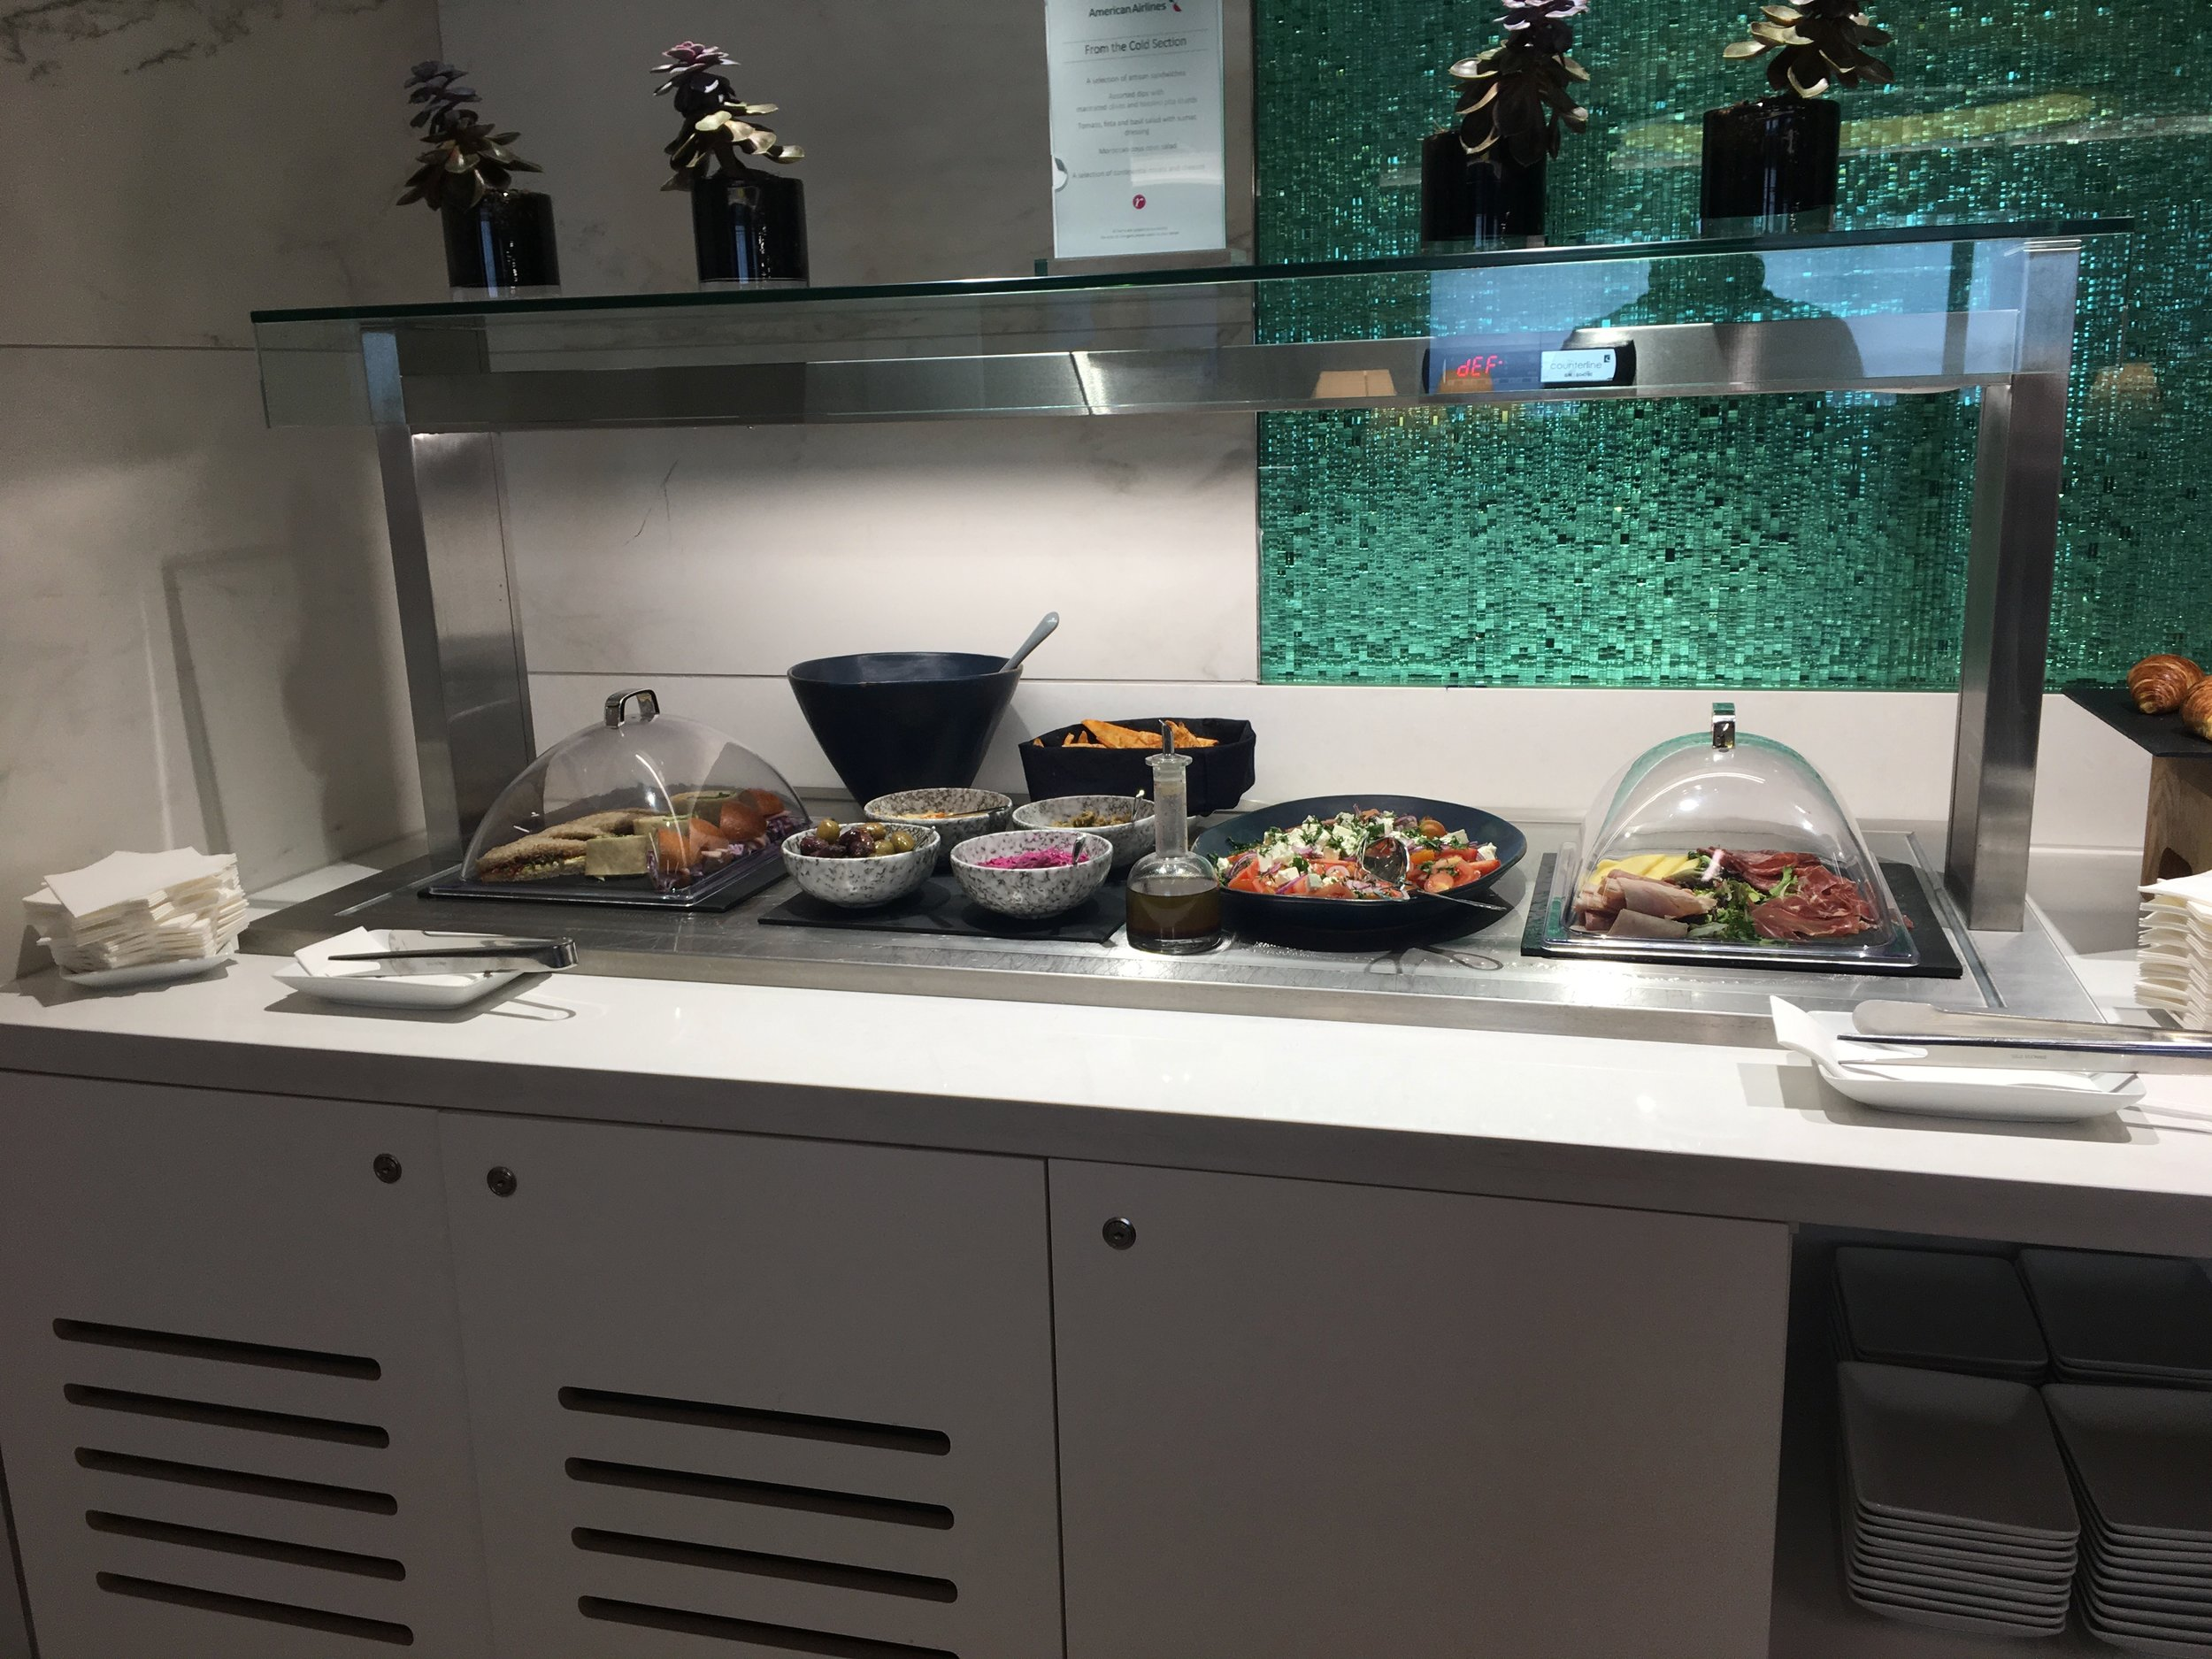 Part of the buffet at the AA arrivals lounge at LHR.